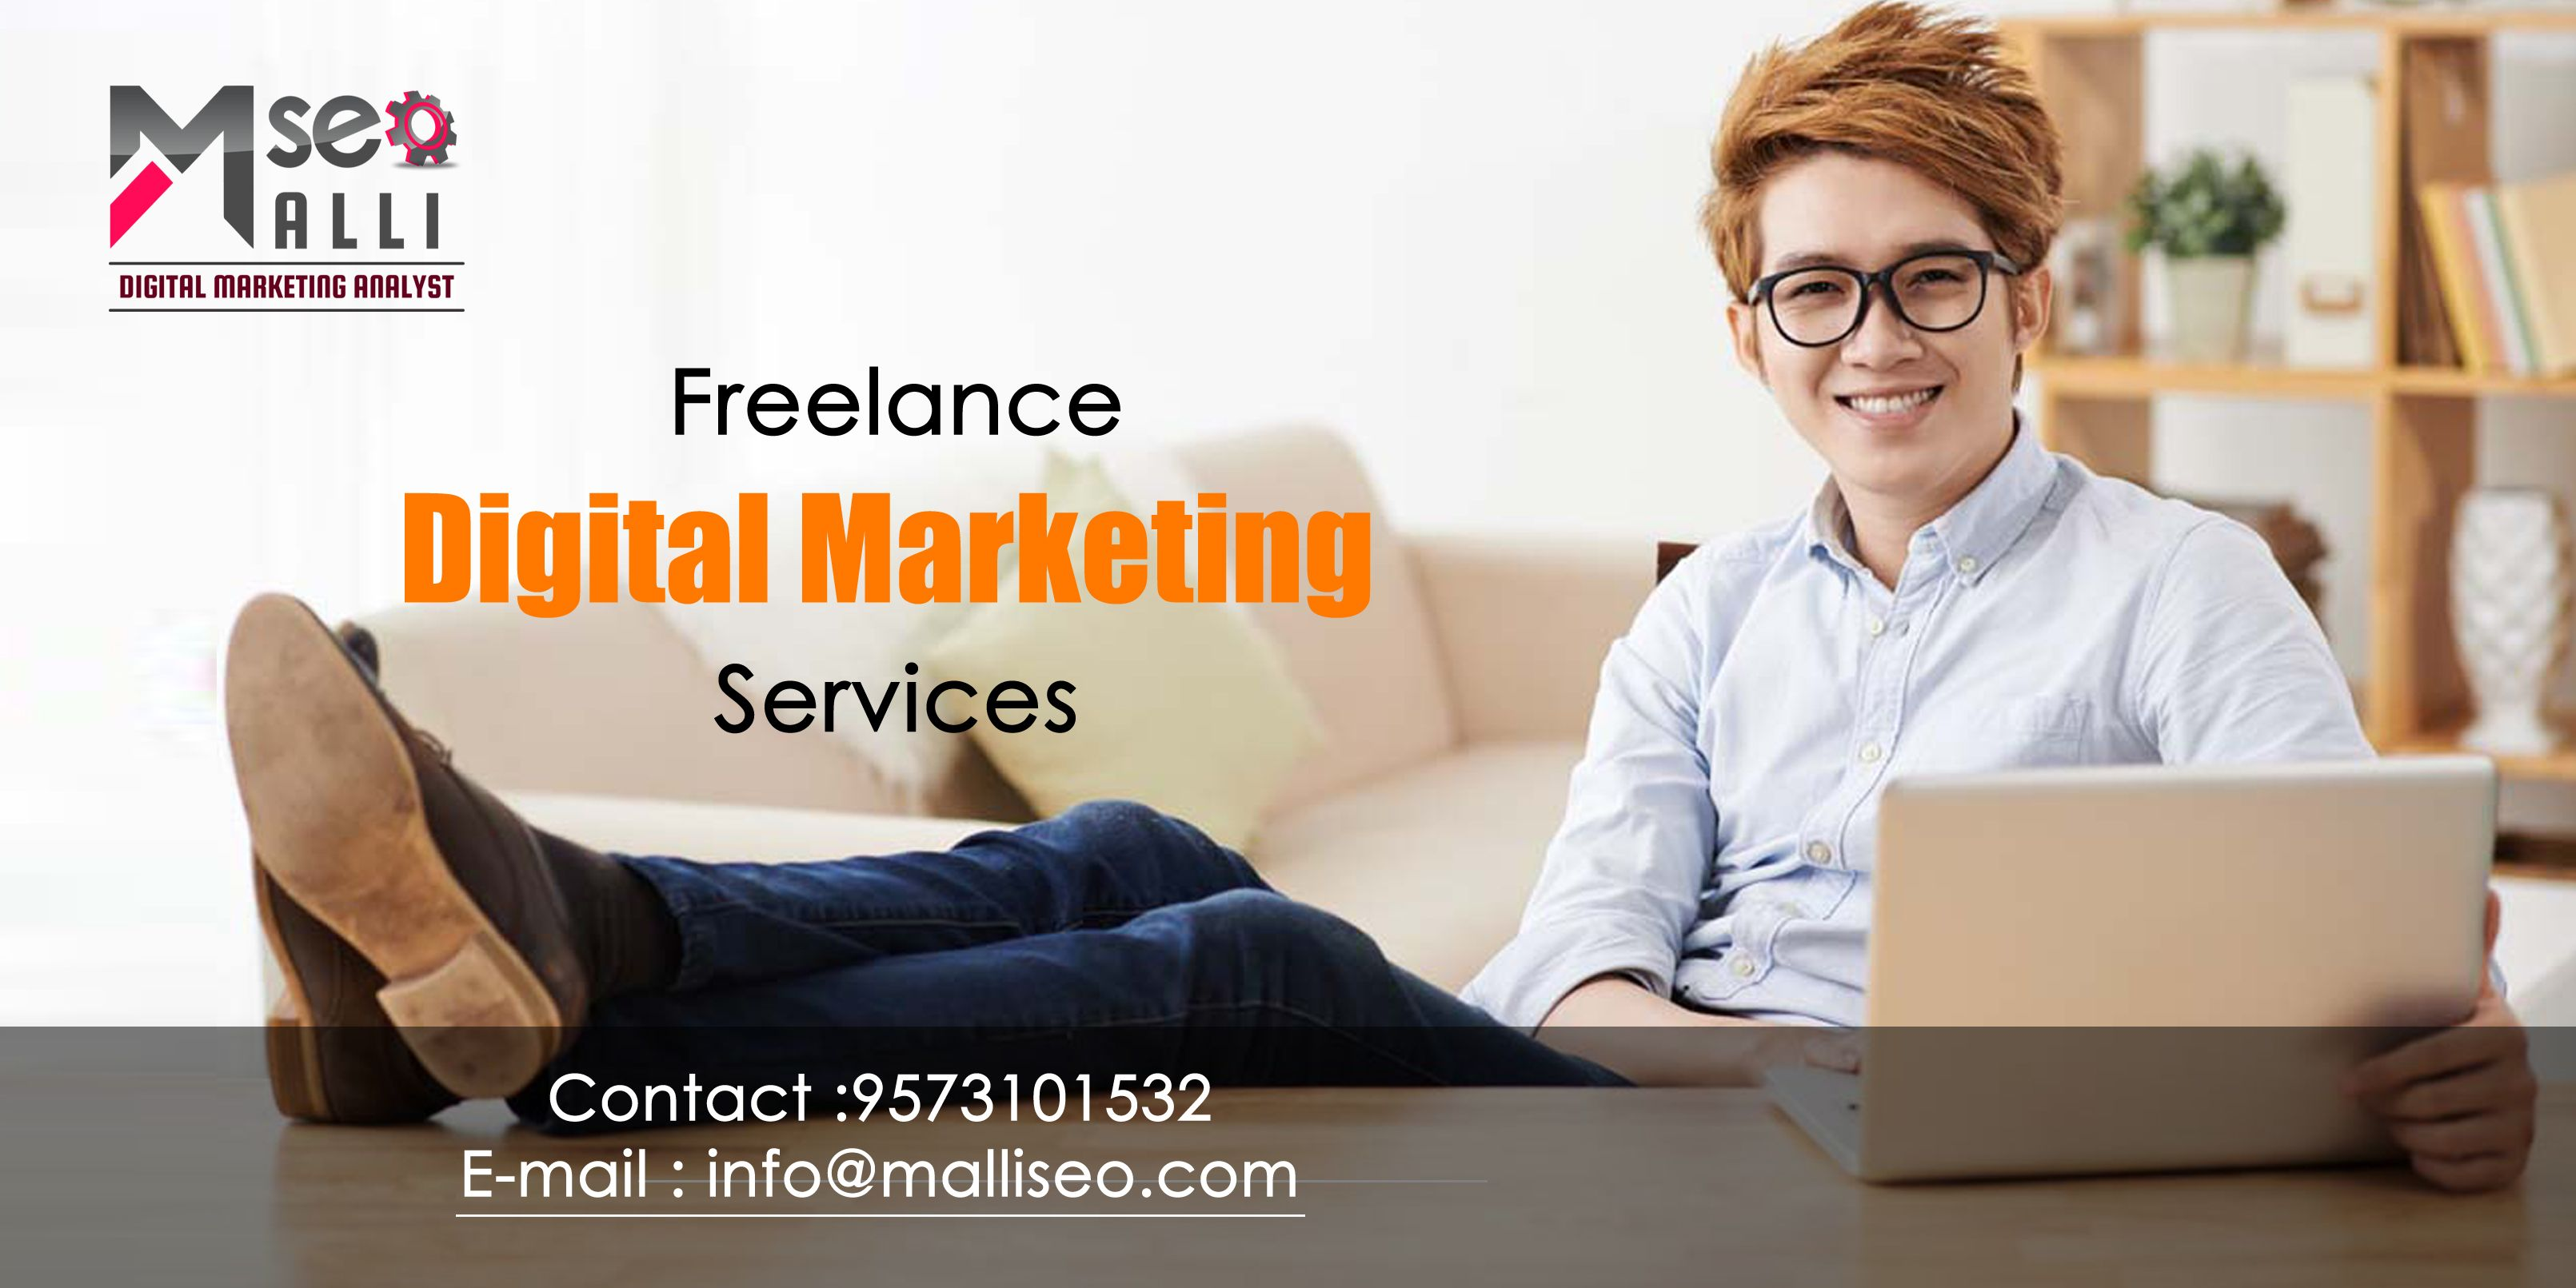 Call 957-310-1532 for Affordable and Low cost Search Engine Optimization, Mallikarjuna - SEO Freelancer in Hyderabad.